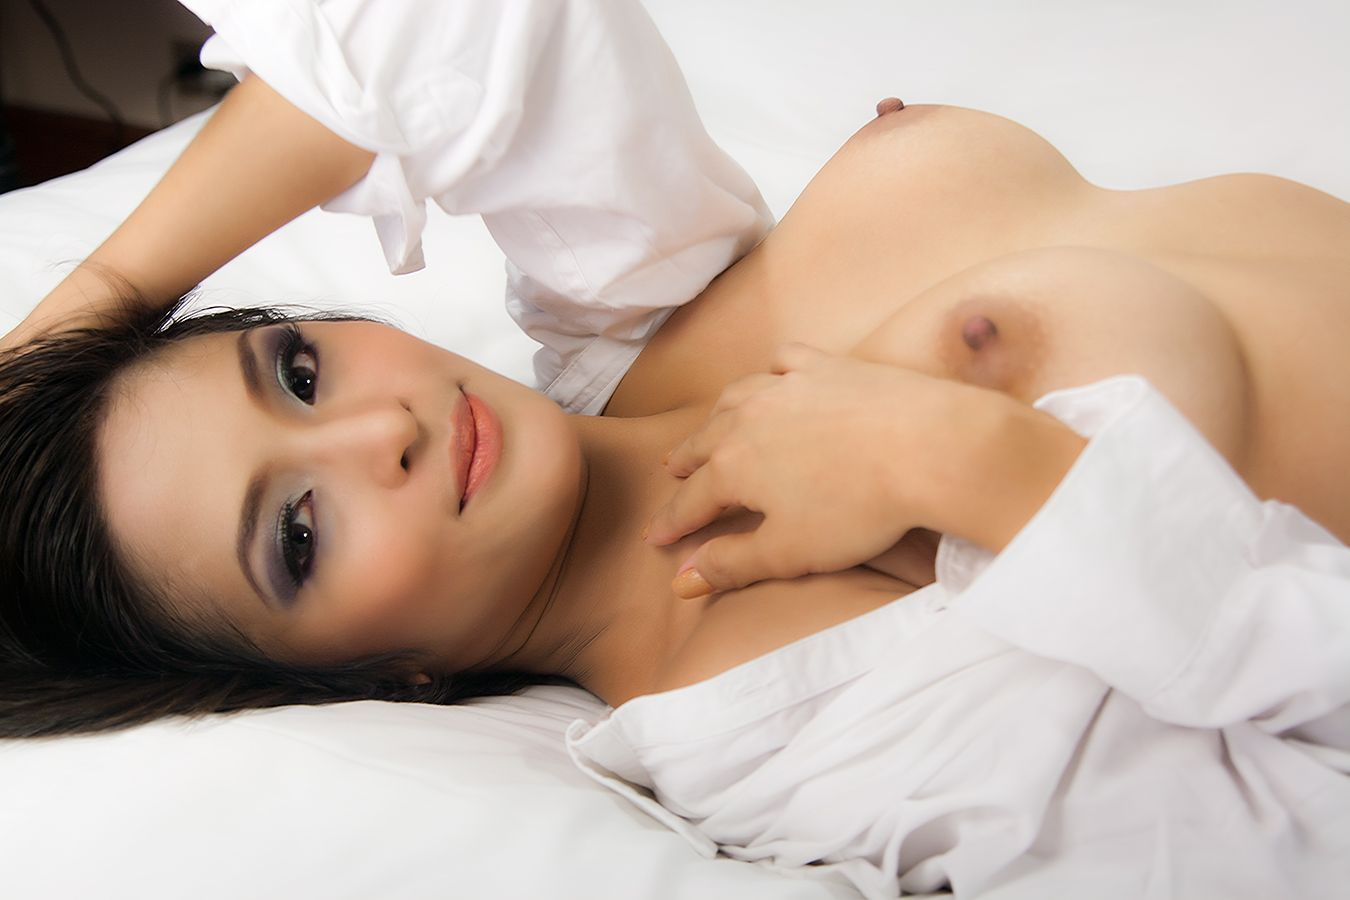 indonesia-nude-magazine